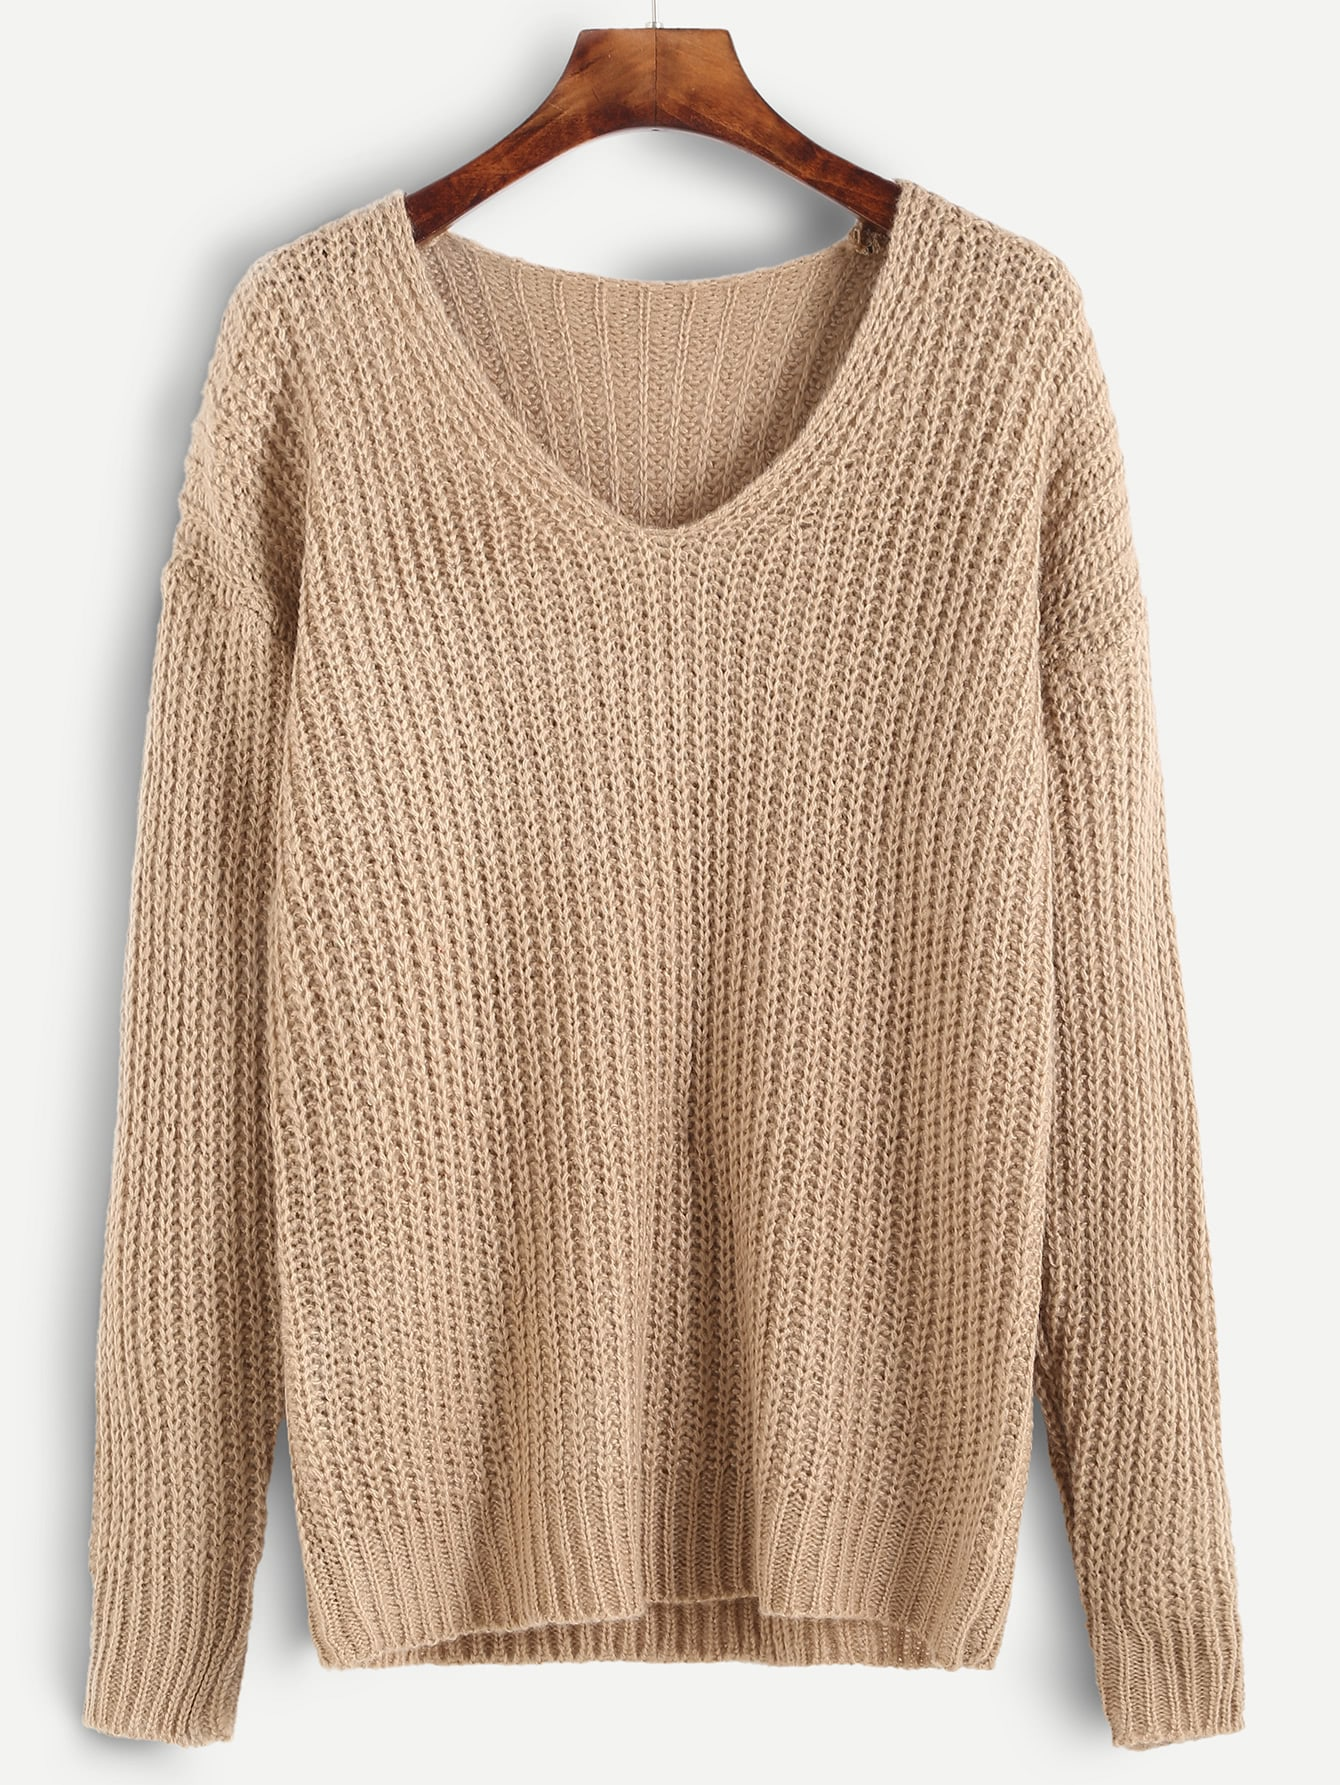 Apricot Ribbed Knit Drop Shoulder Sweater sweater160920455A